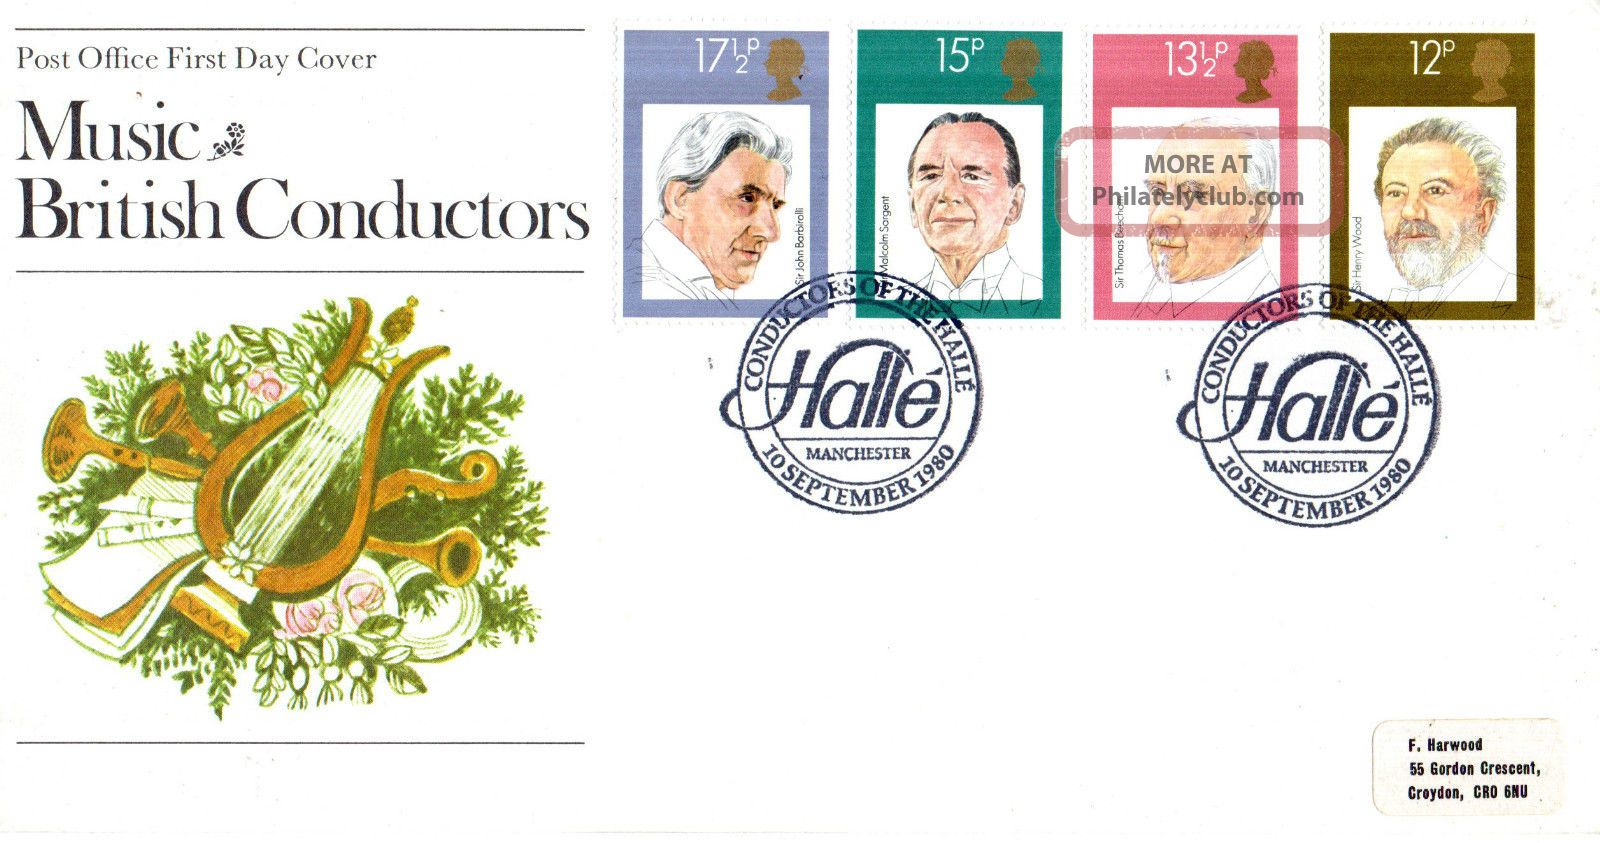 10 September 1980 Famous Conductors Po First Day Cover Conductors Of The Halle S Topical Stamps photo